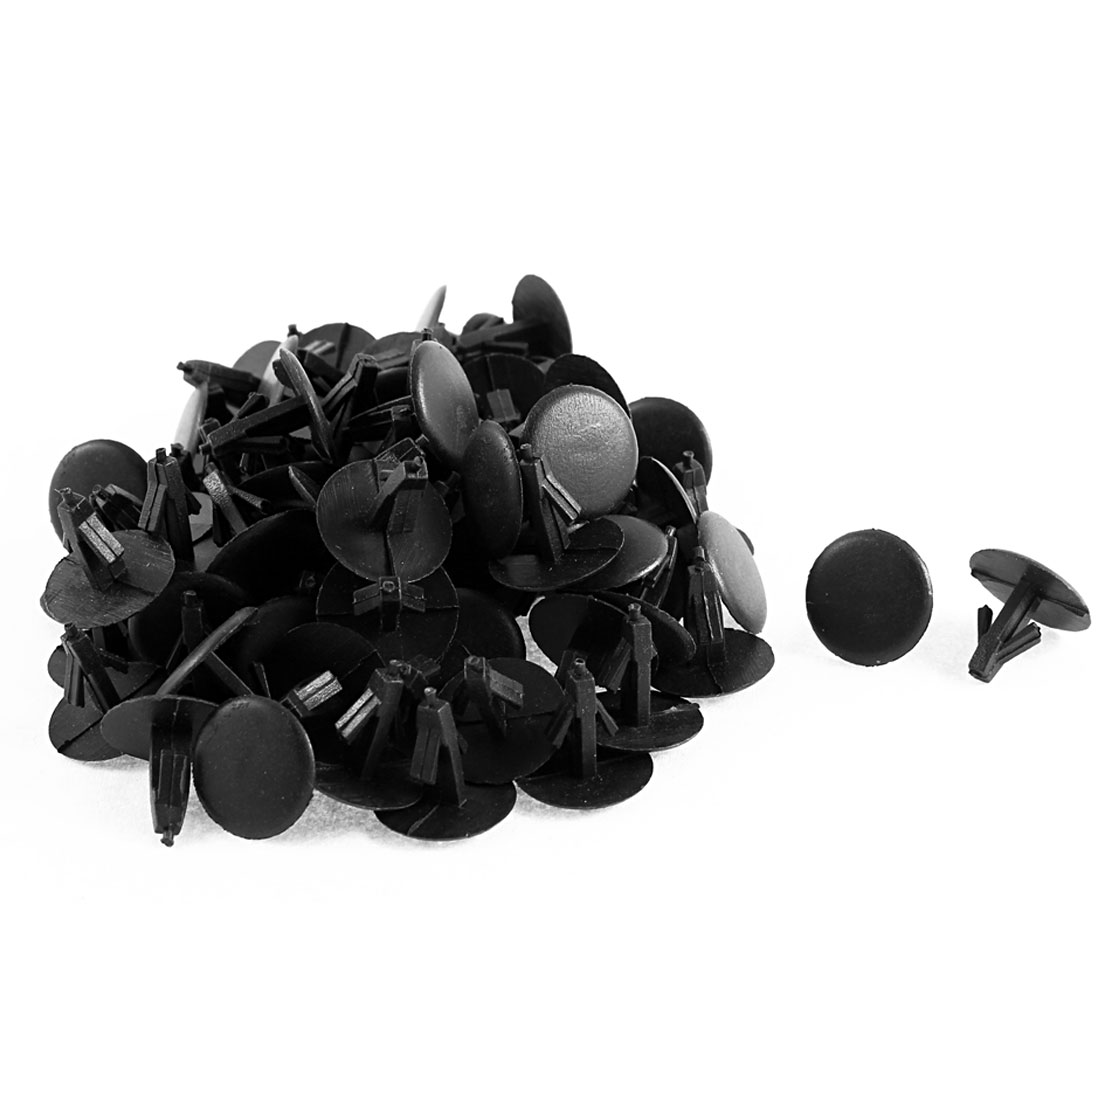 82Pcs Machine Cover Plastic Retainer Clips 7 x 14 x 10mm for Toyota